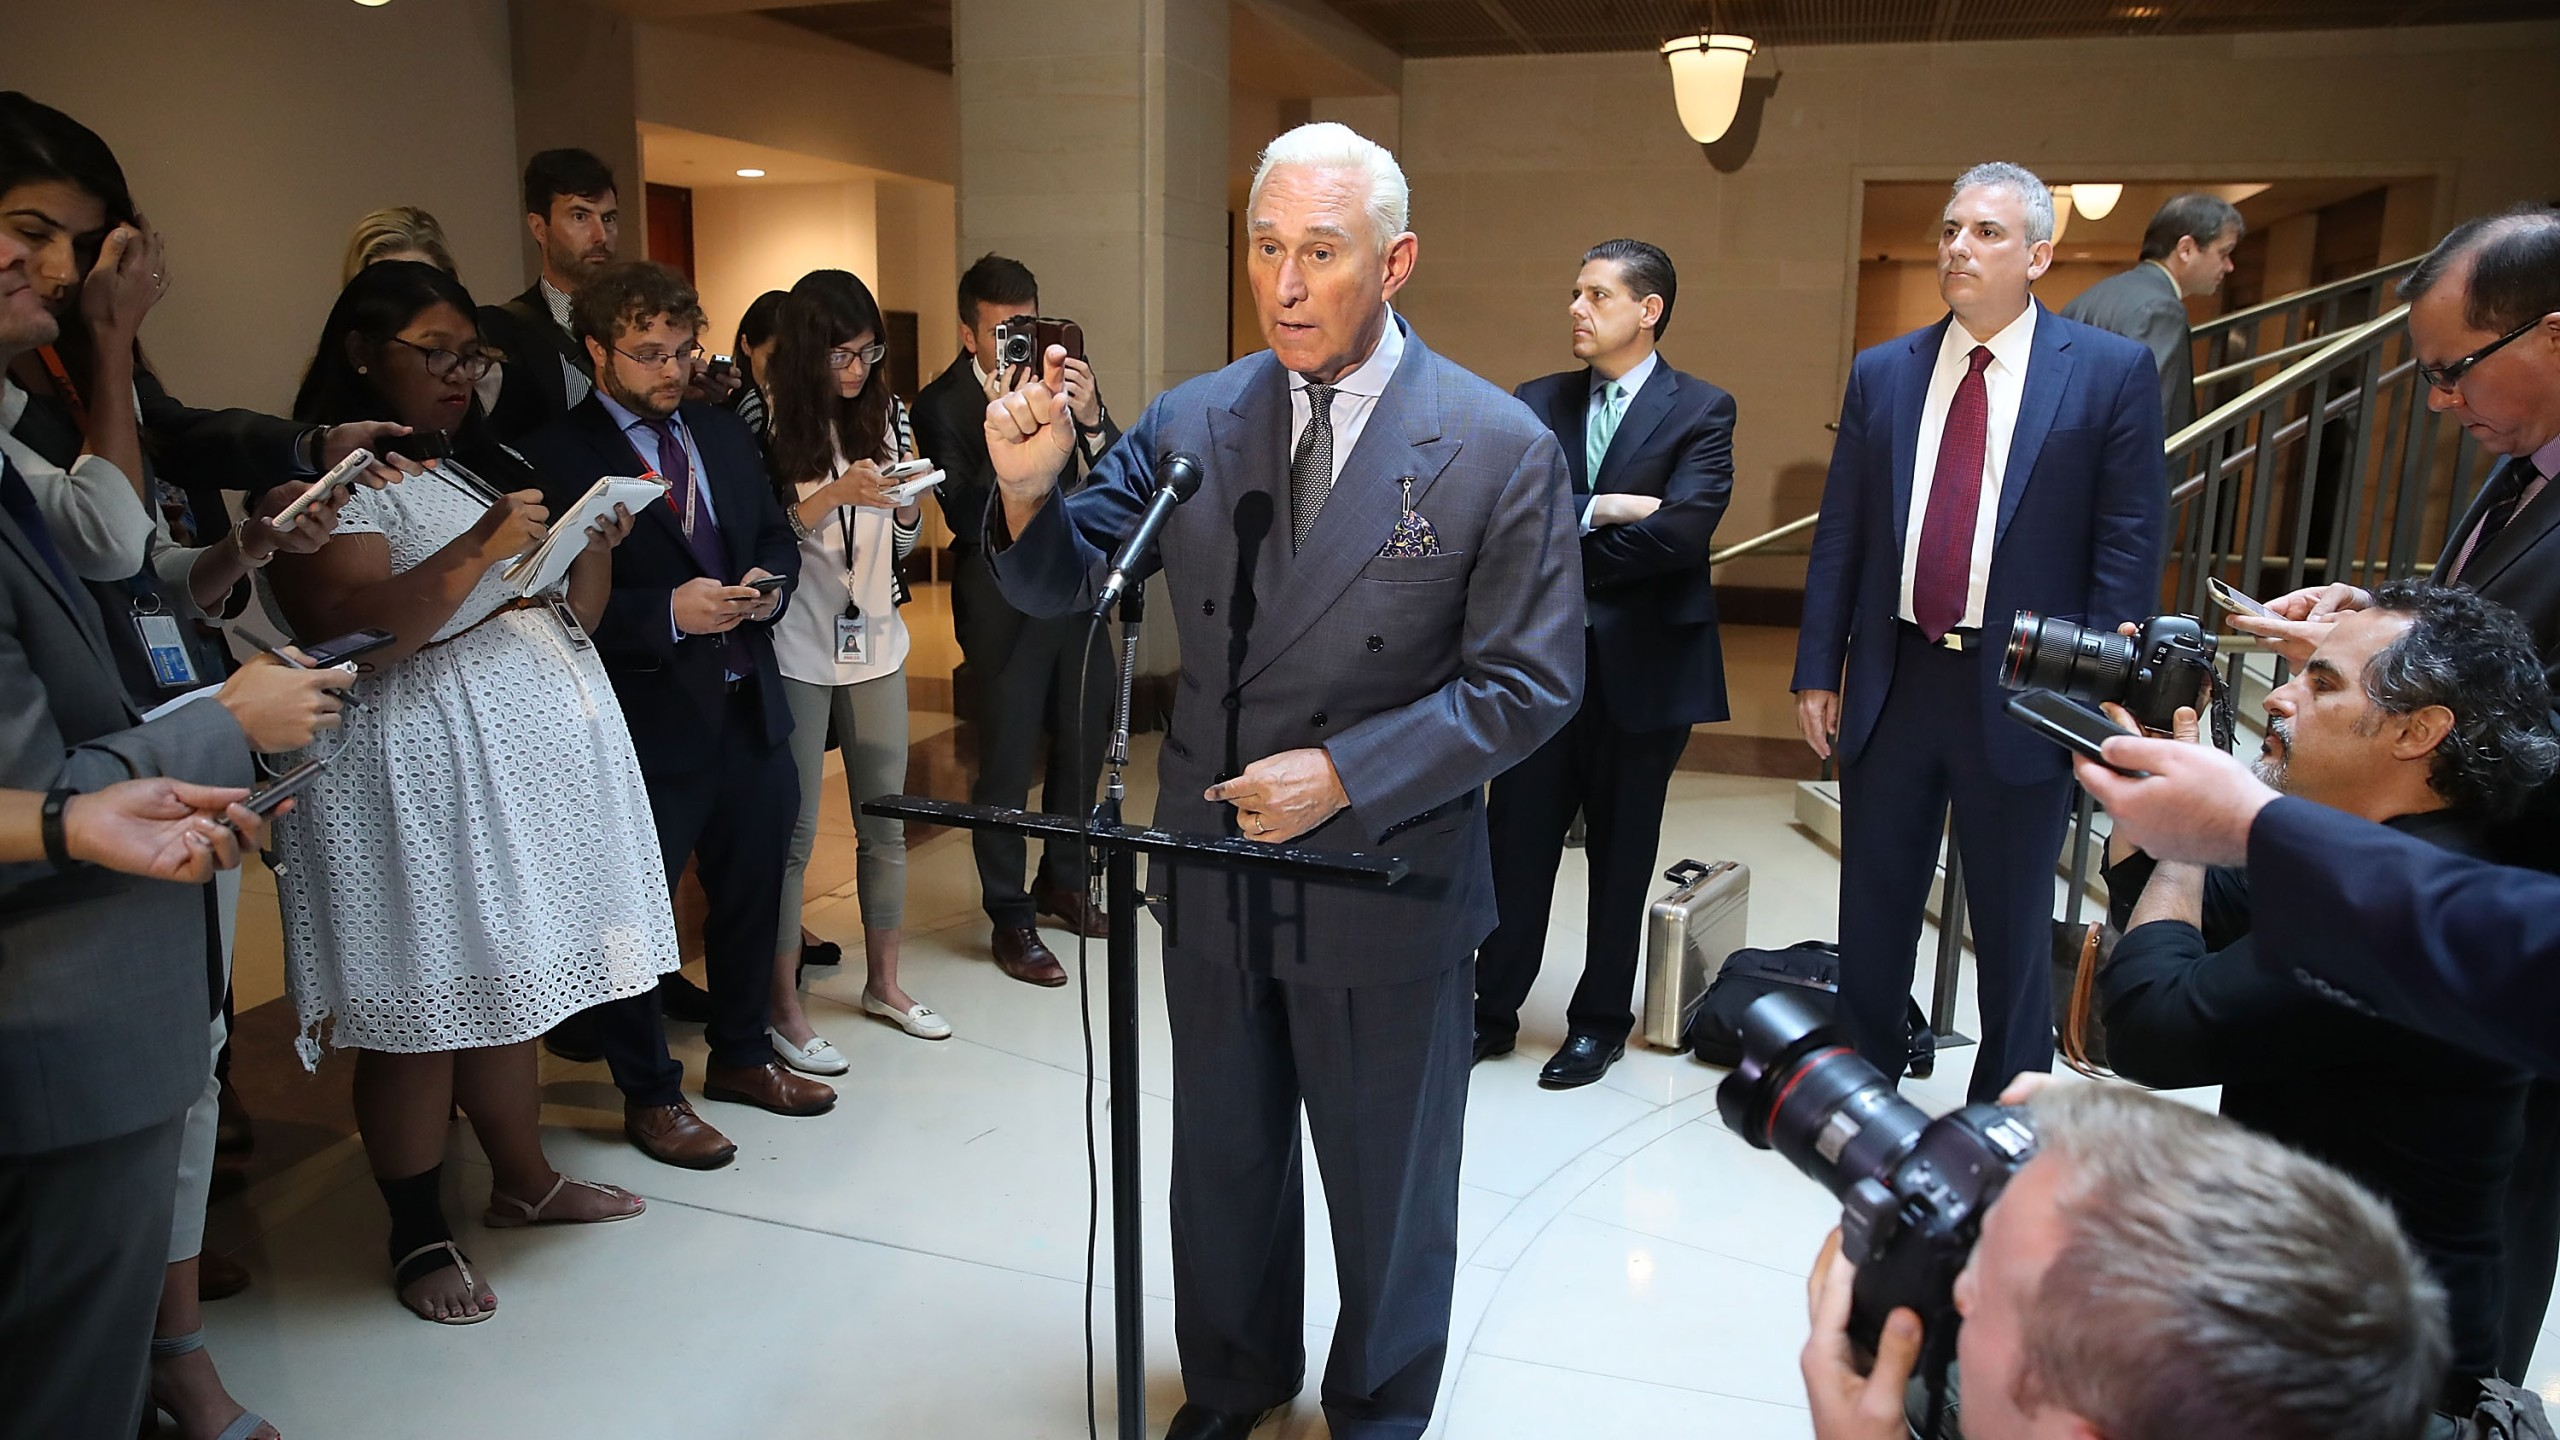 Roger Stone, former confidant to President Trump speaks to the media after appearing before the House Intelligence Committee during a closed door hearing, September 26, 2017 in Washington, DC. (Credit: Mark Wilson/Getty Images)